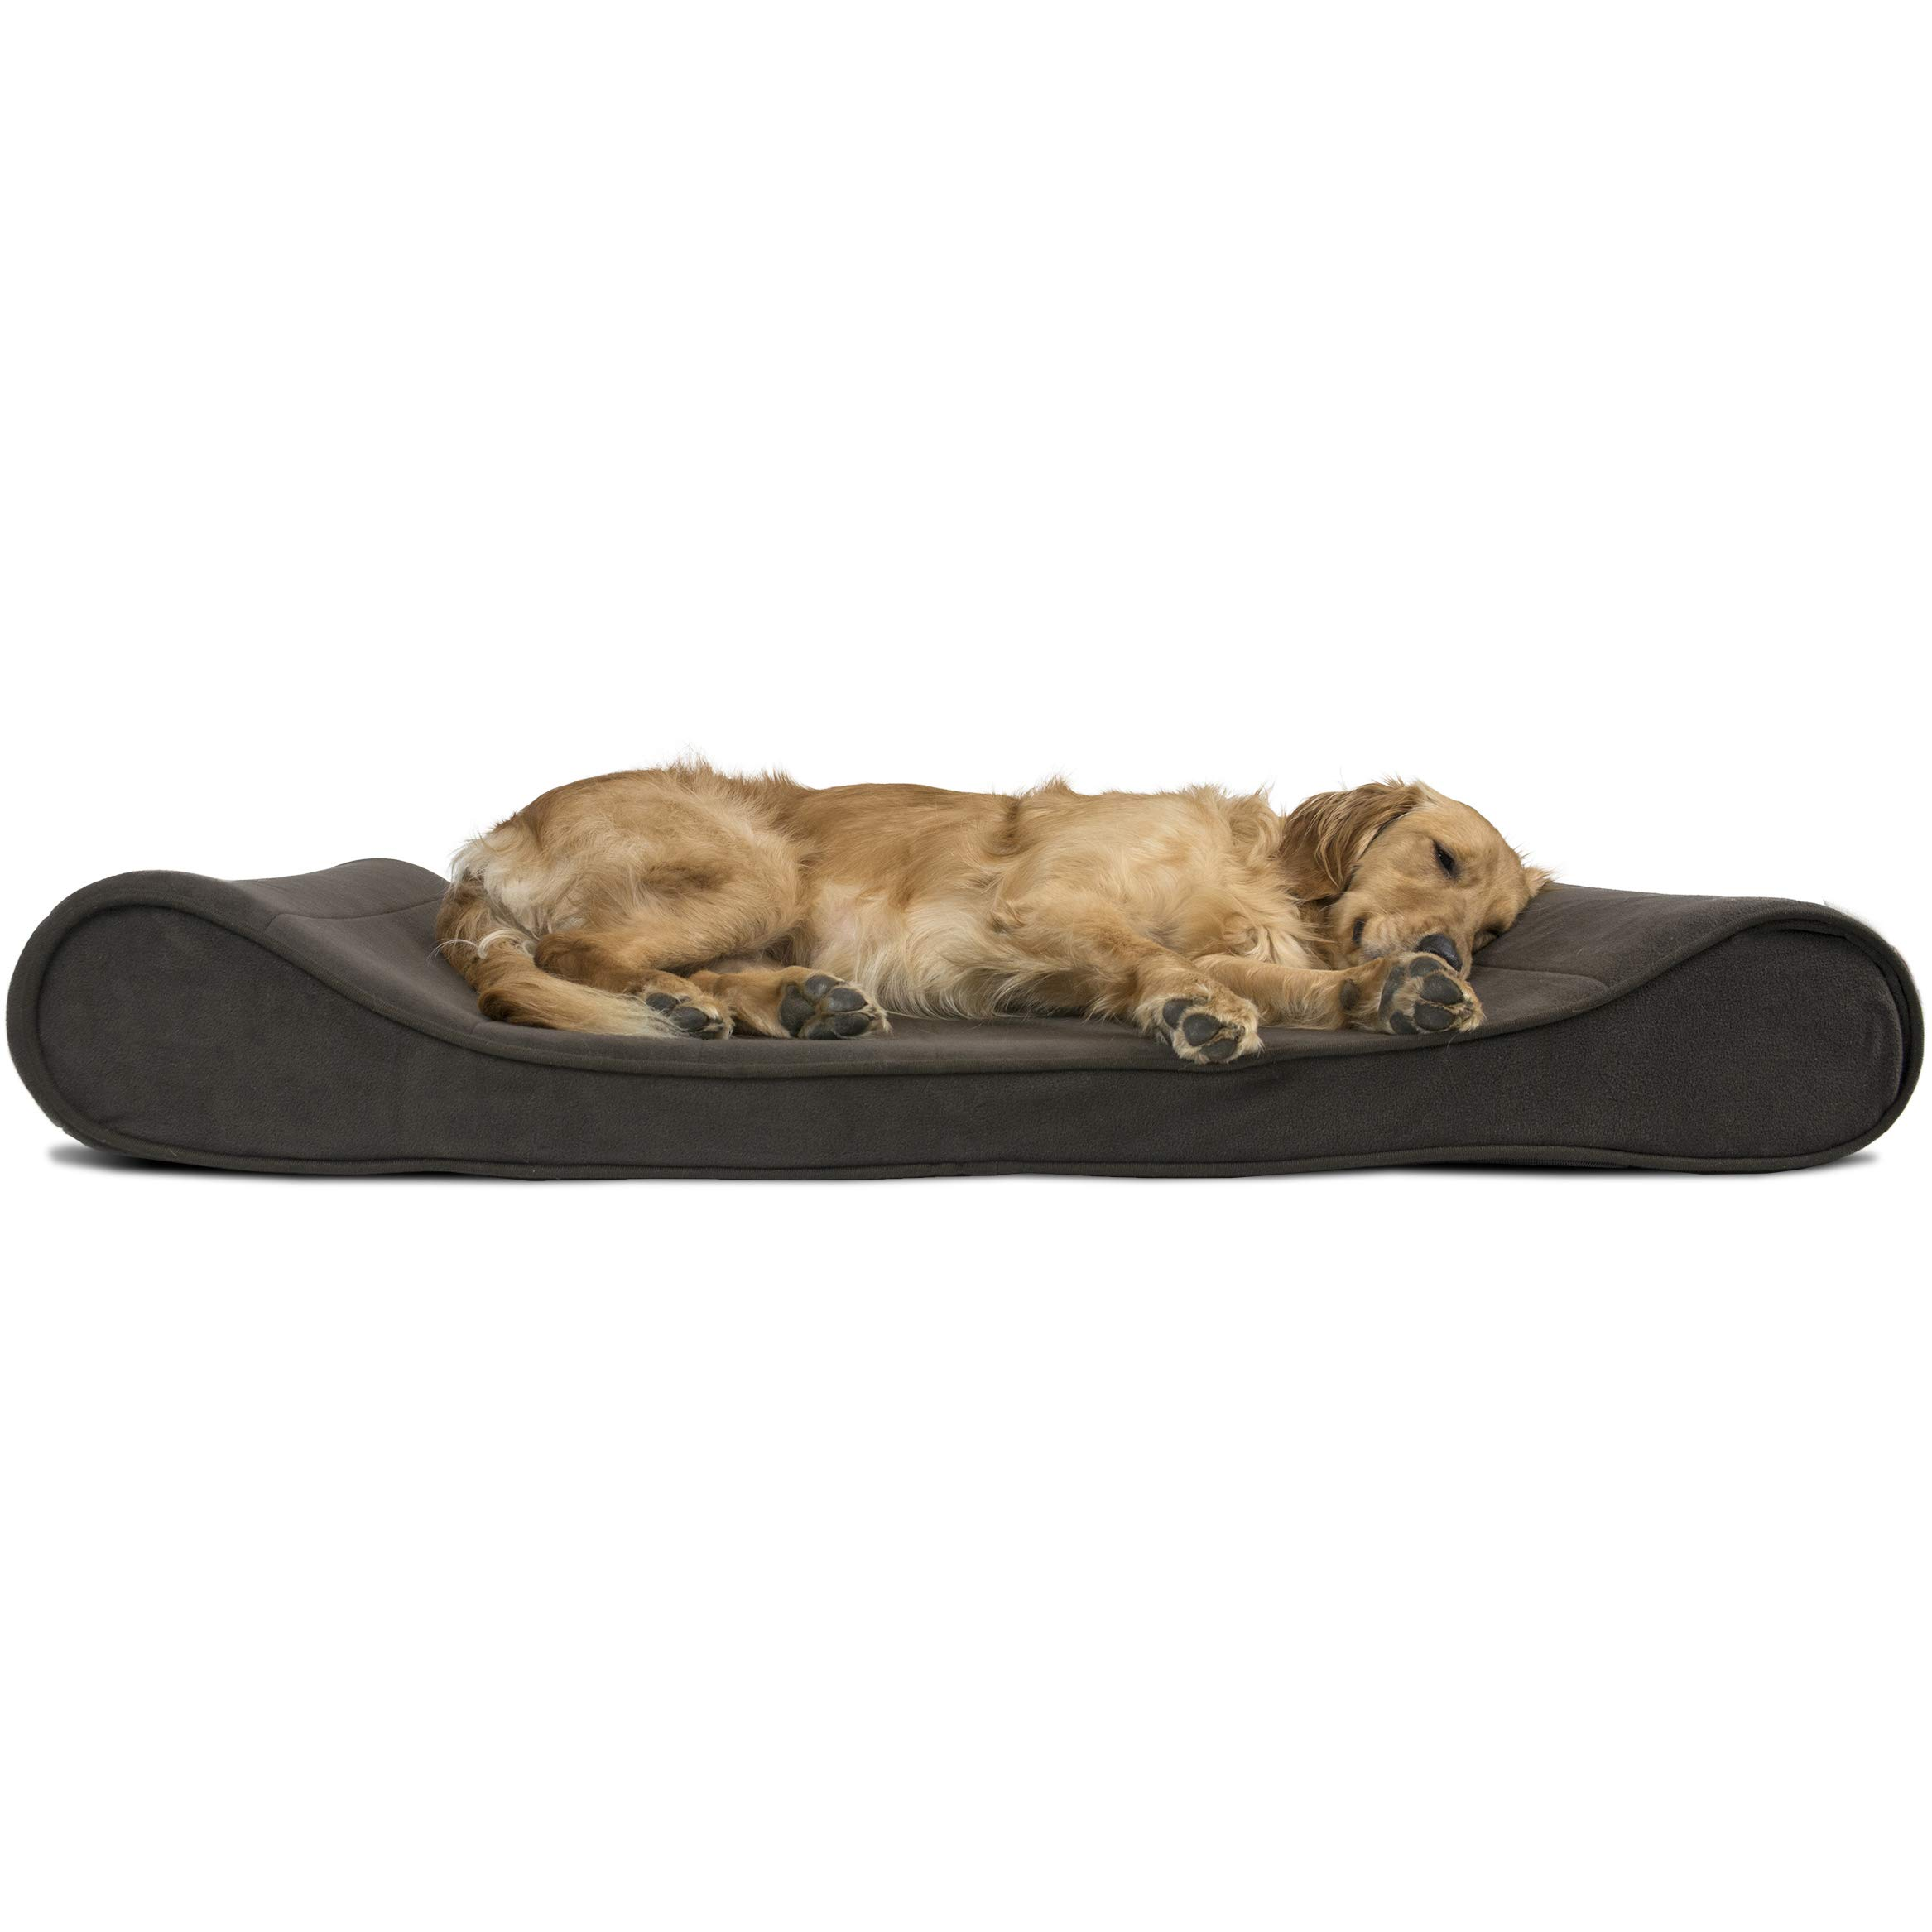 FurHaven Pet Dog Bed   Orthopedic Microvelvet Luxe Lounger Pet Bed for Dogs & Cats, Espresso, Jumbo